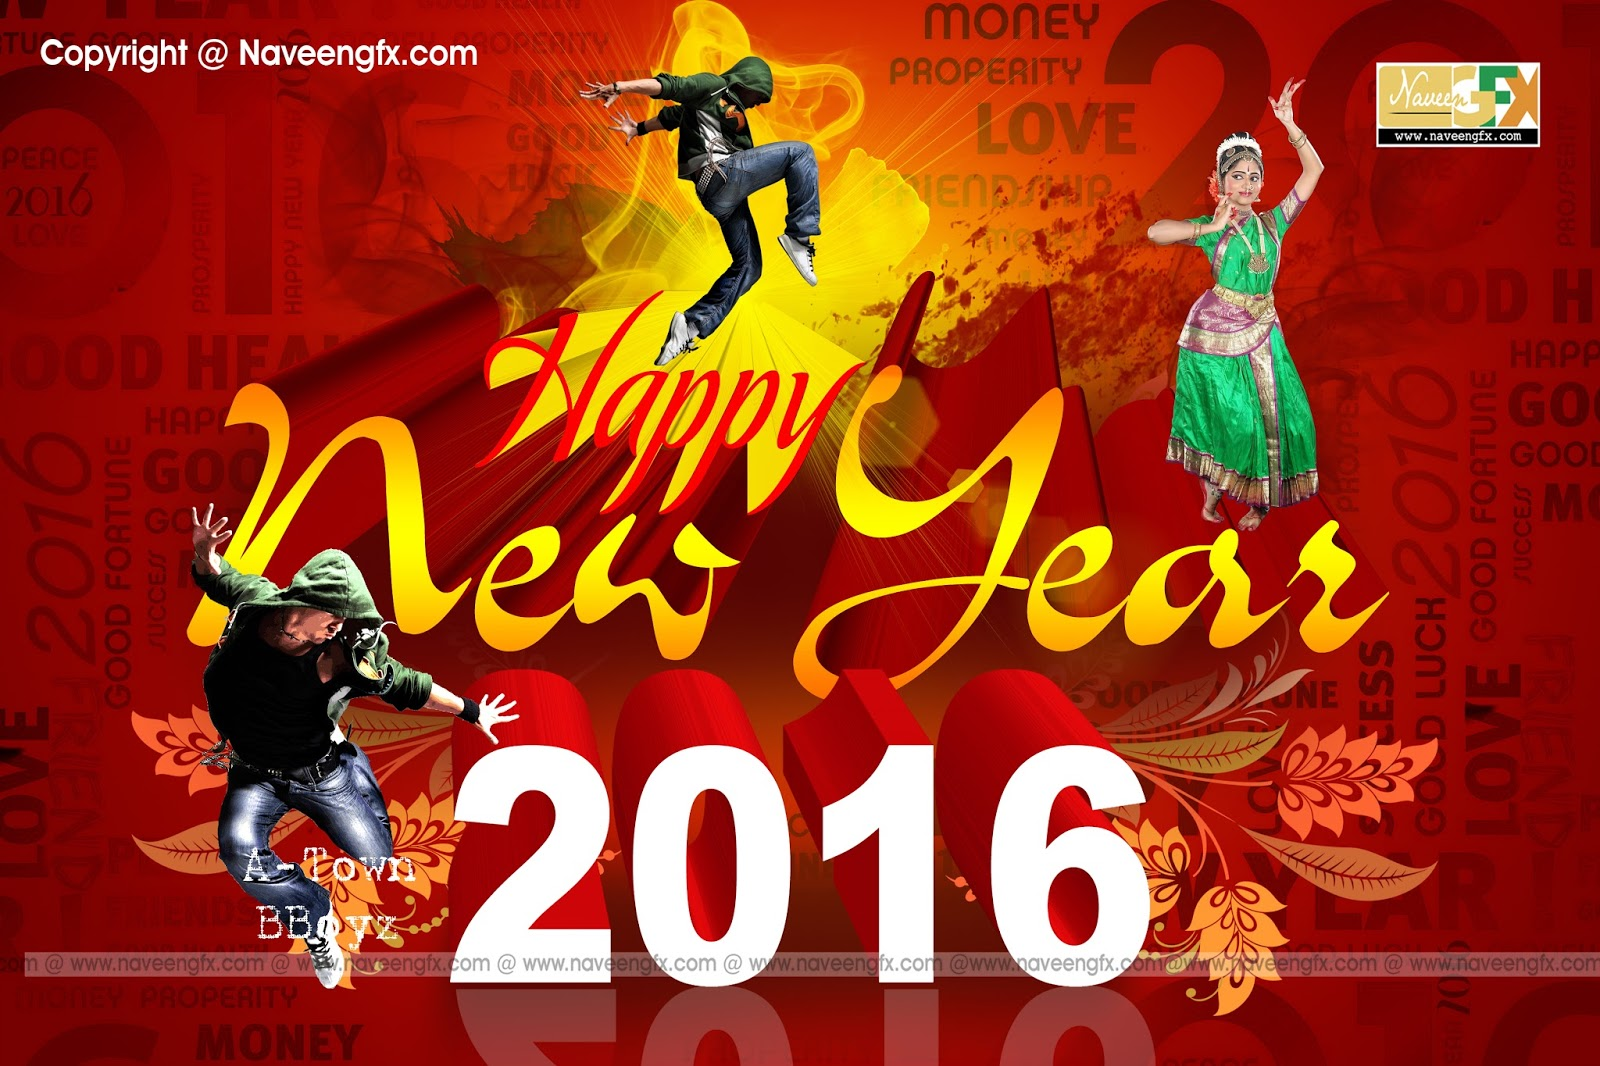 Happy New Year 2016 Psd Background Images Free Online Naveengfx